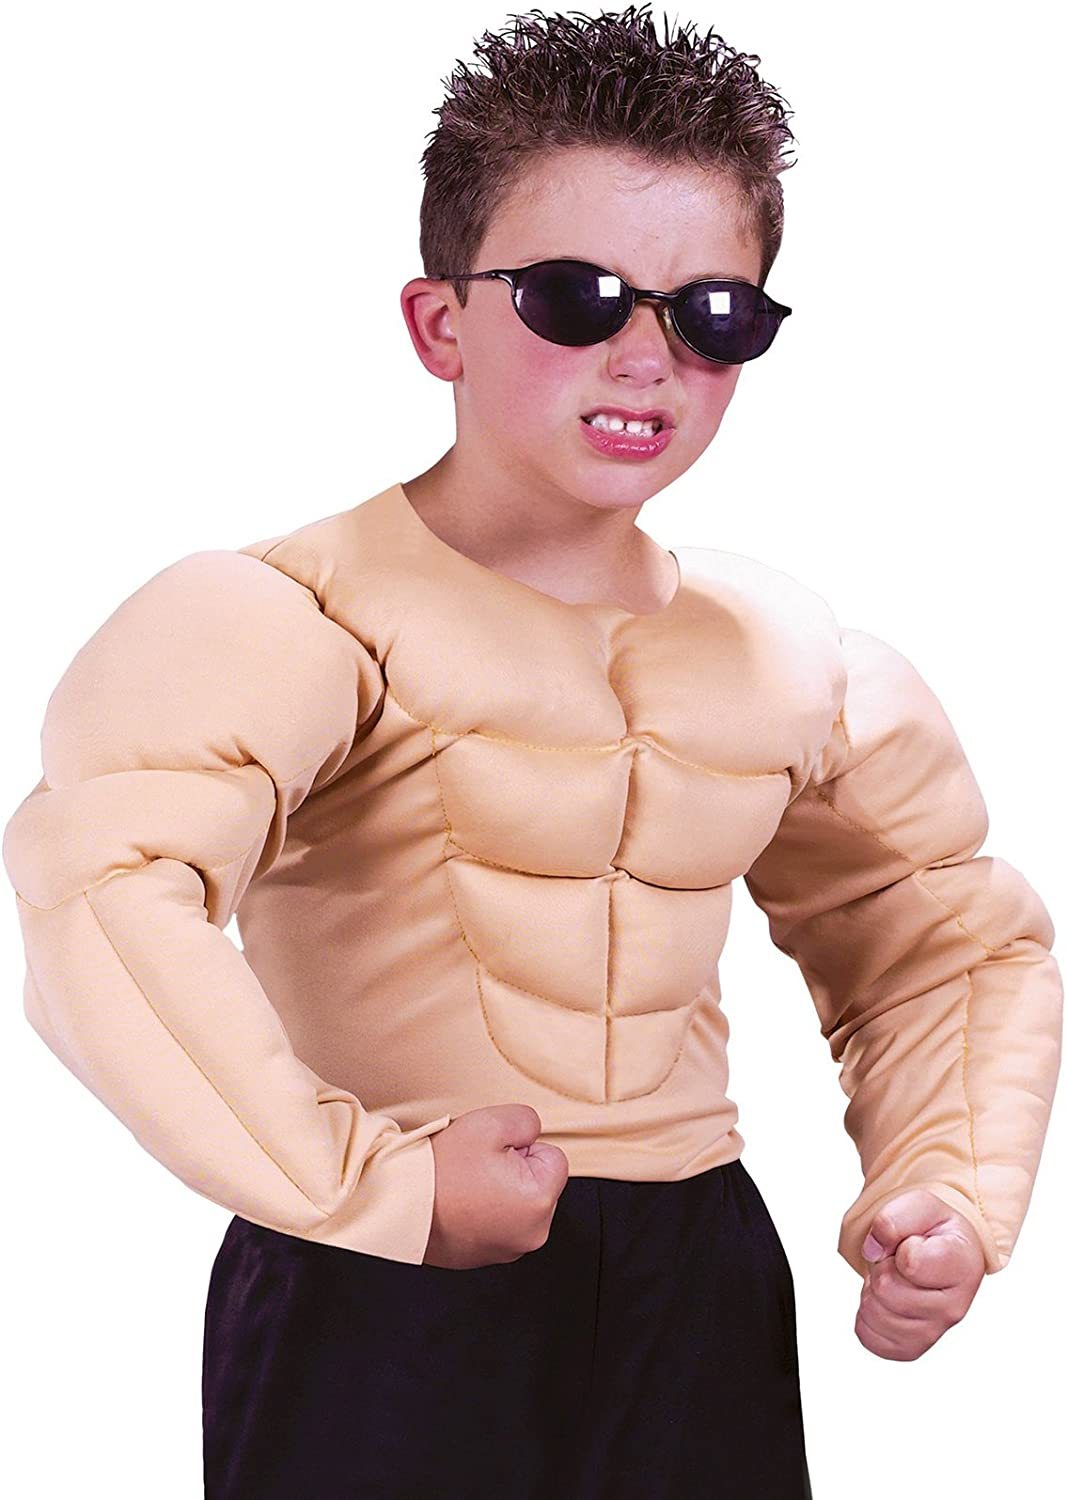 Halloween FX Muscle Shirt Child Medium - New Free Shipping Costume Cheap super special price 8-10